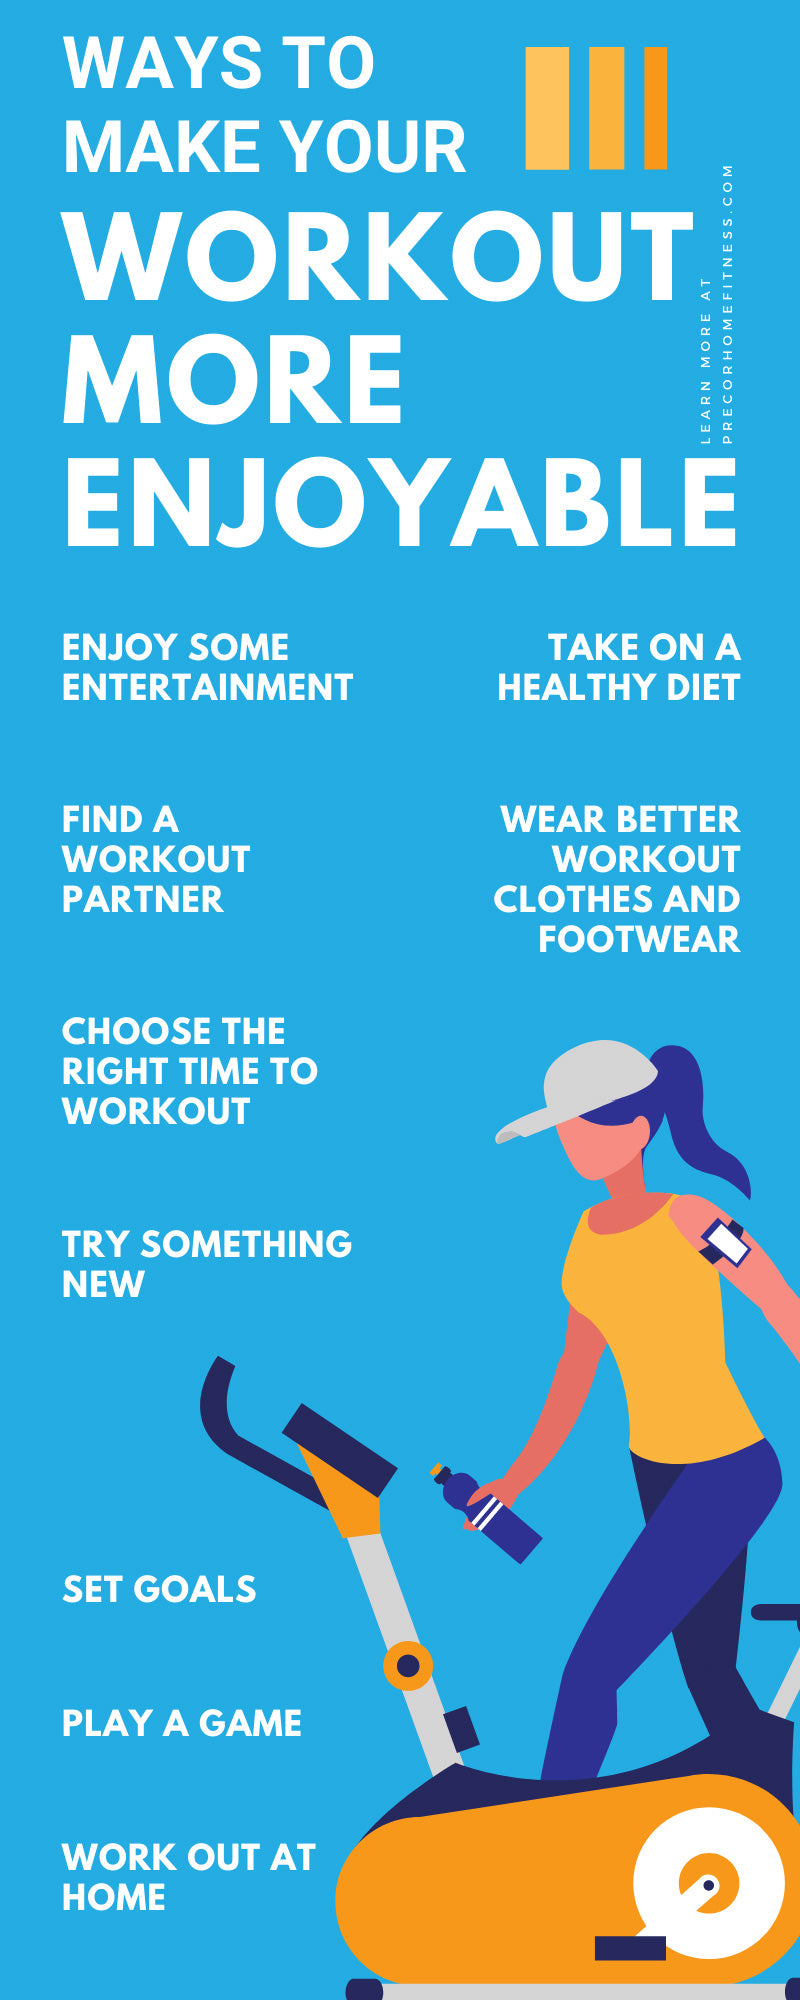 Ways To Make Your Workout More Enjoyable